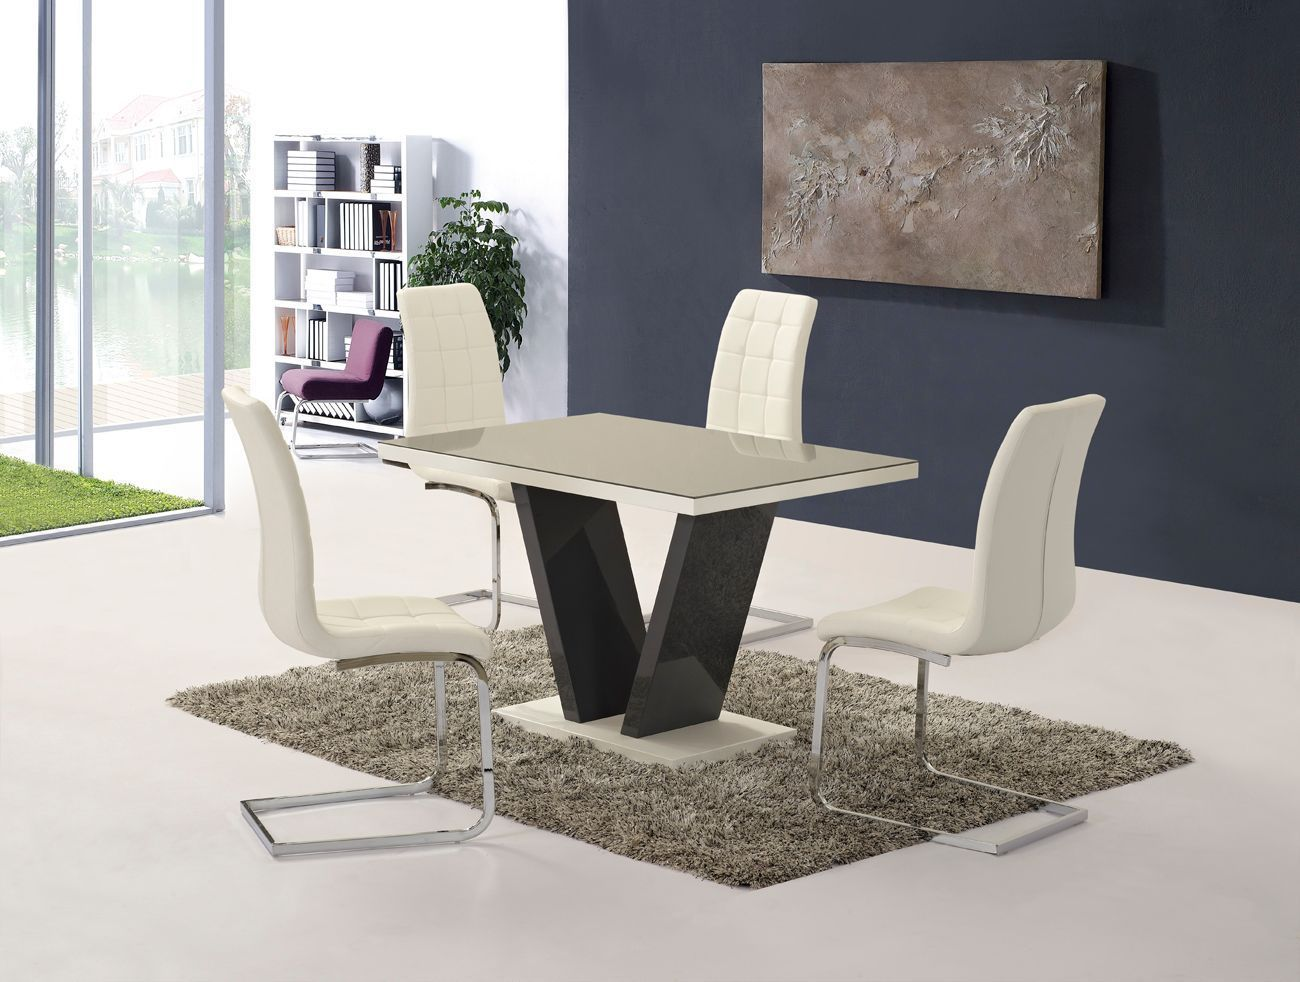 Grey High Gloss Glass Dining Table And 4 White Chairs